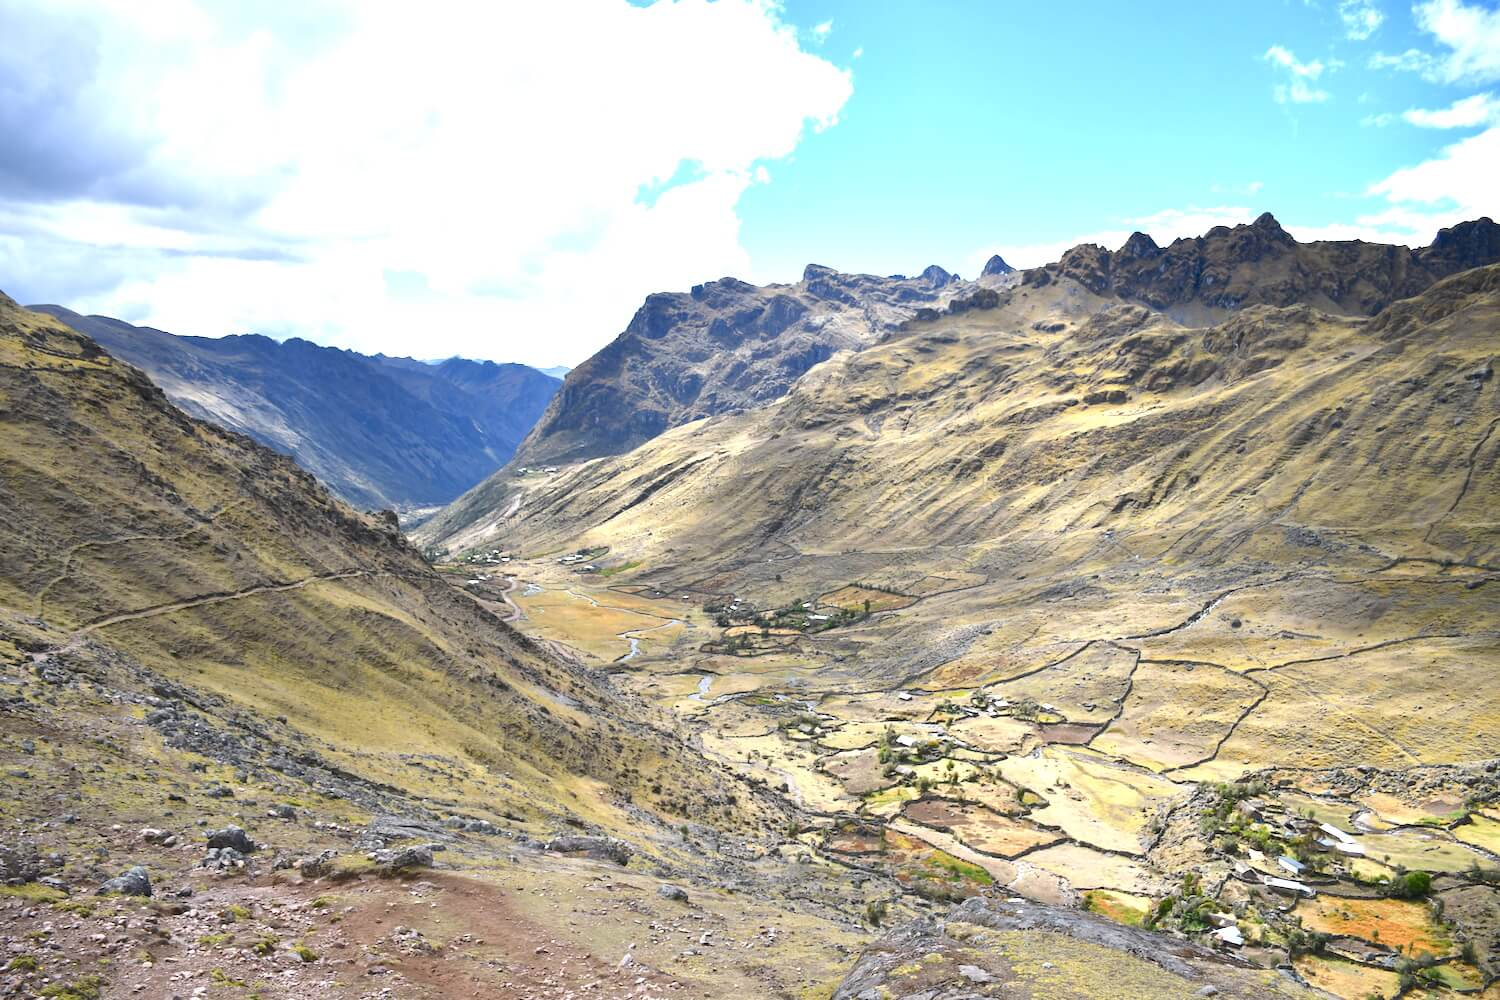 How Difficult is the Lares Trek to Machu Picchu?